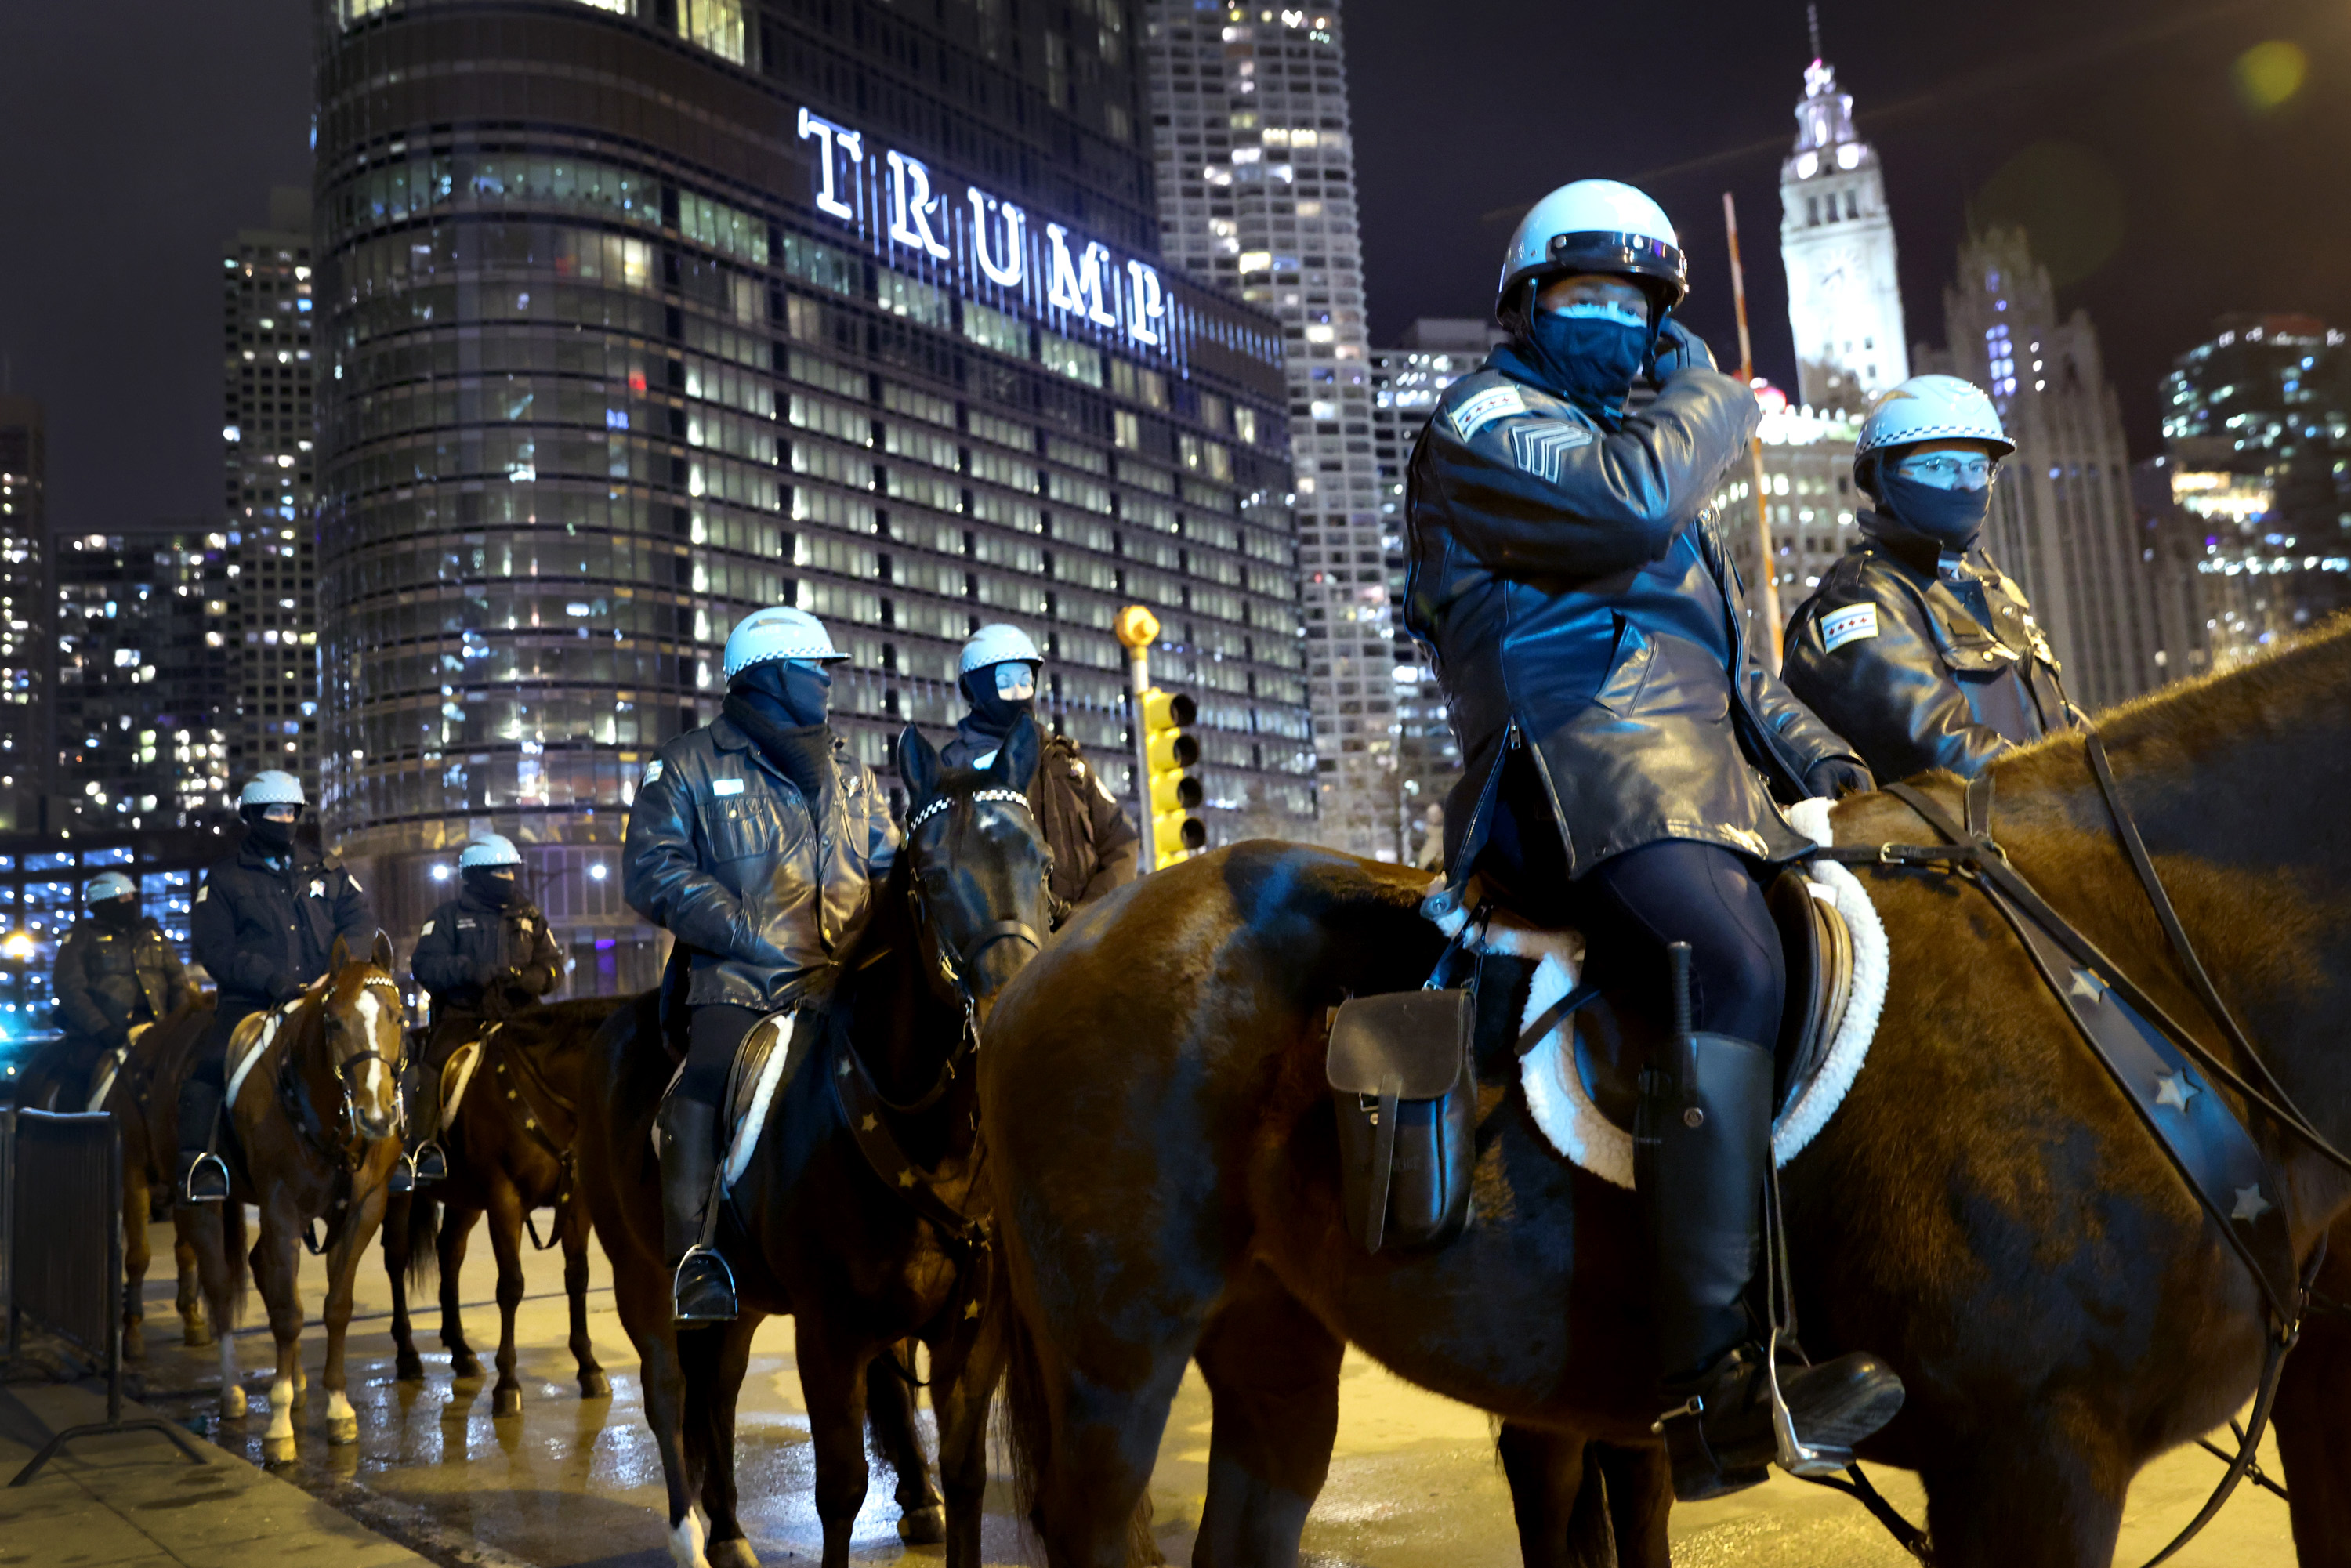 CHICAGO, ILLINOIS - JANUARY 07: Police keep watch as a small group of demonstrators protest near Trump Tower on January 07, 2021 in Chicago, Illinois. Protesterdscalled for the removal of President Donald Trump from office after a pro-Trump mob stormed the Capitol building in Washington, DC yesterday as lawmakers met to count the Electoral College votes in the presidential election.  (Photo by Scott Olson/Getty Images)